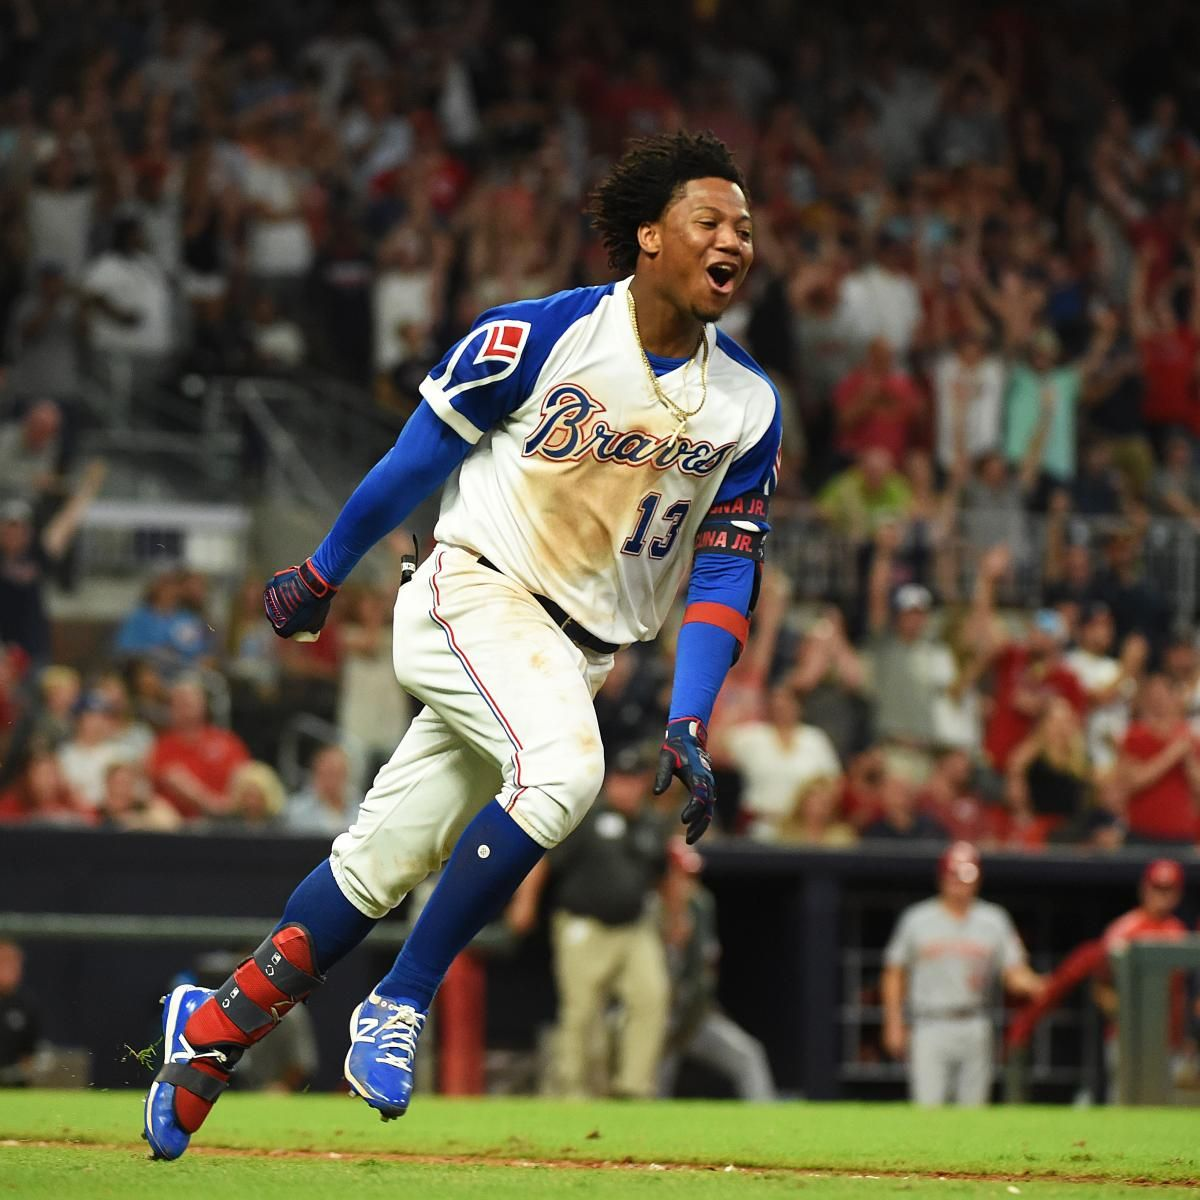 'The Beast' Is Born: 21-Year-Old Ronald Acuna Jr. Is the New King of the ATL | Bleacher Report | Latest News, Videos and Highlights